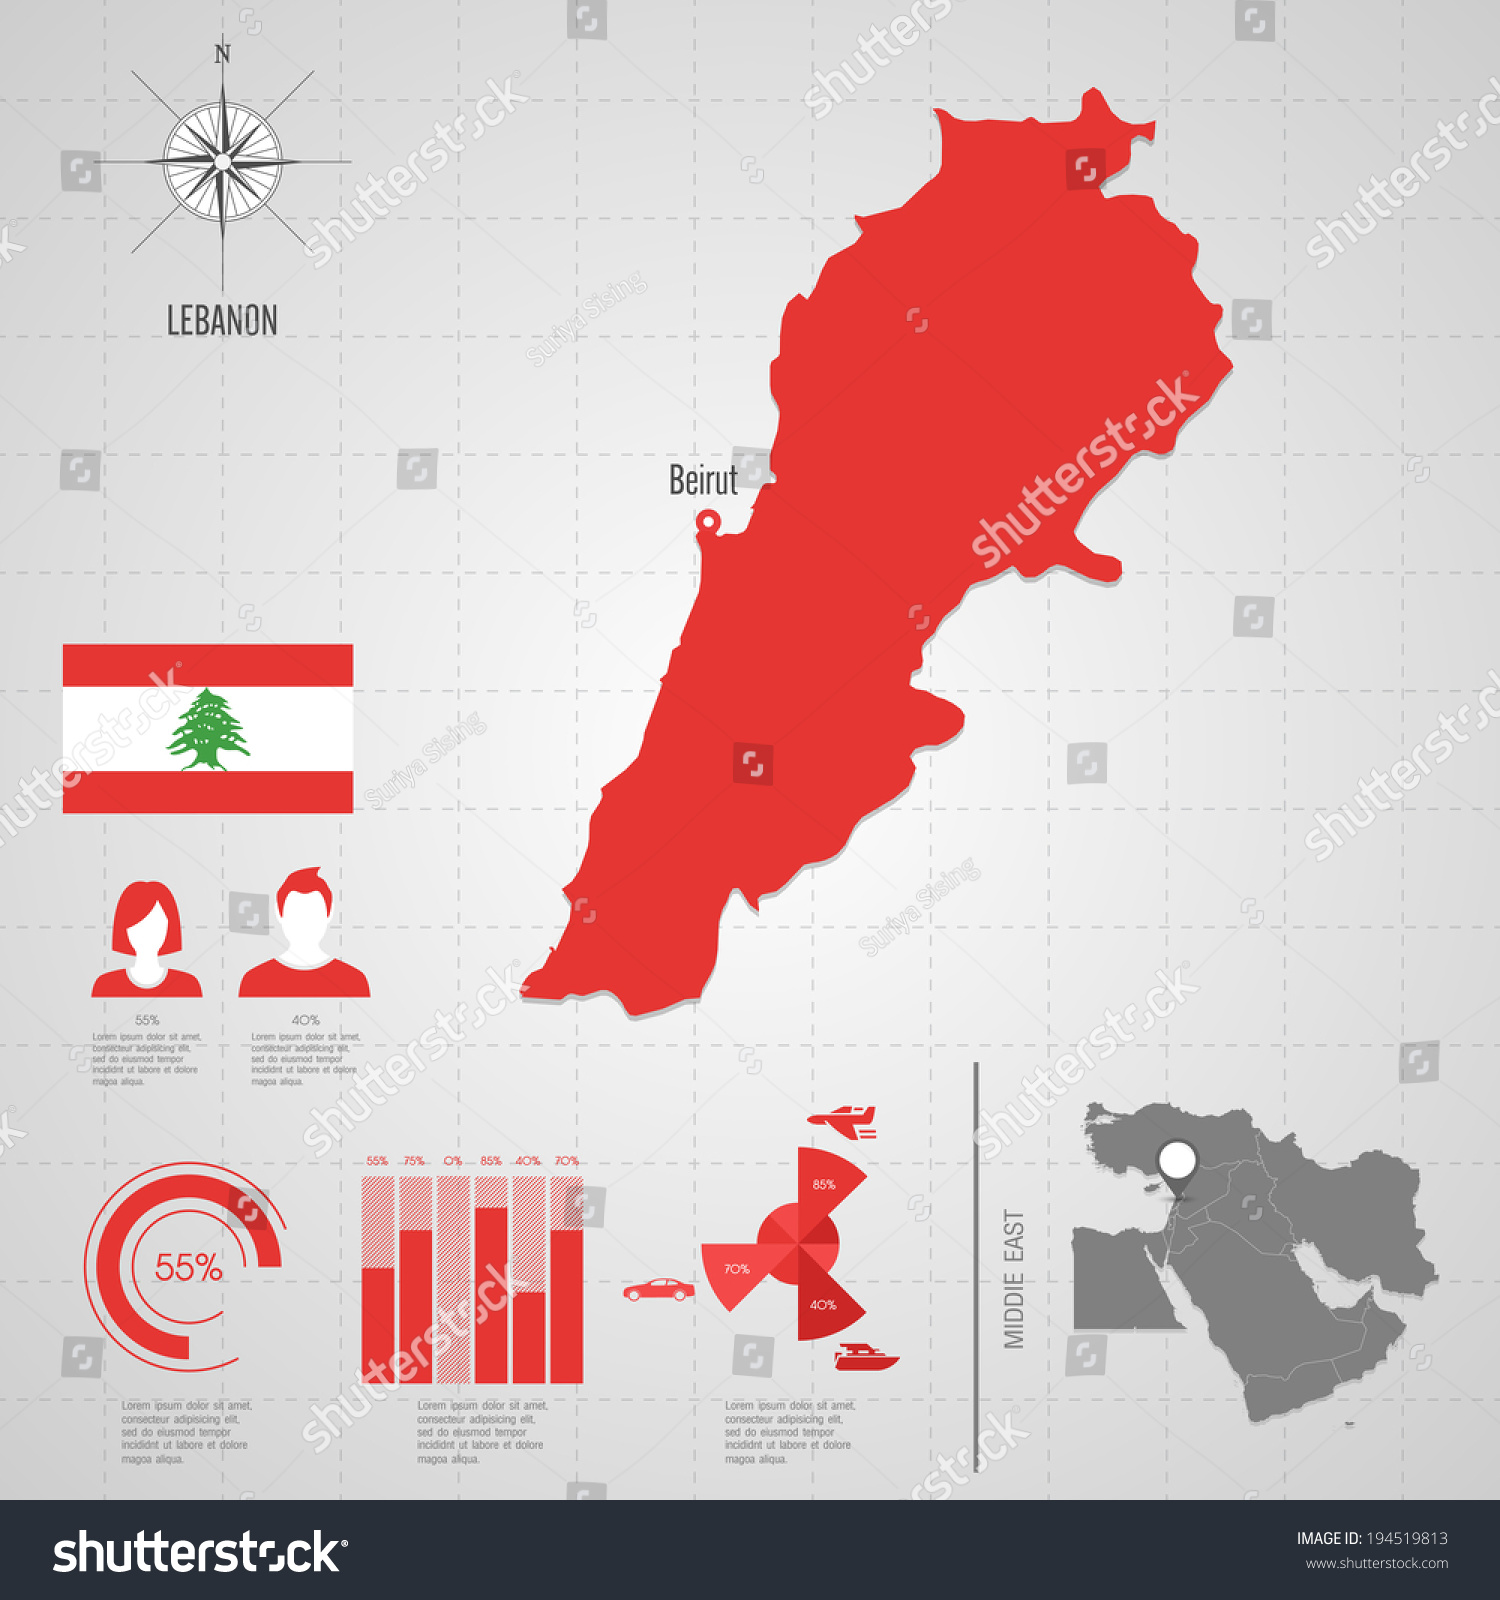 Republic lebanon flag asia world map stock vector 194519813 republic lebanon flag asia world map stock vector 194519813 shutterstock gumiabroncs Images